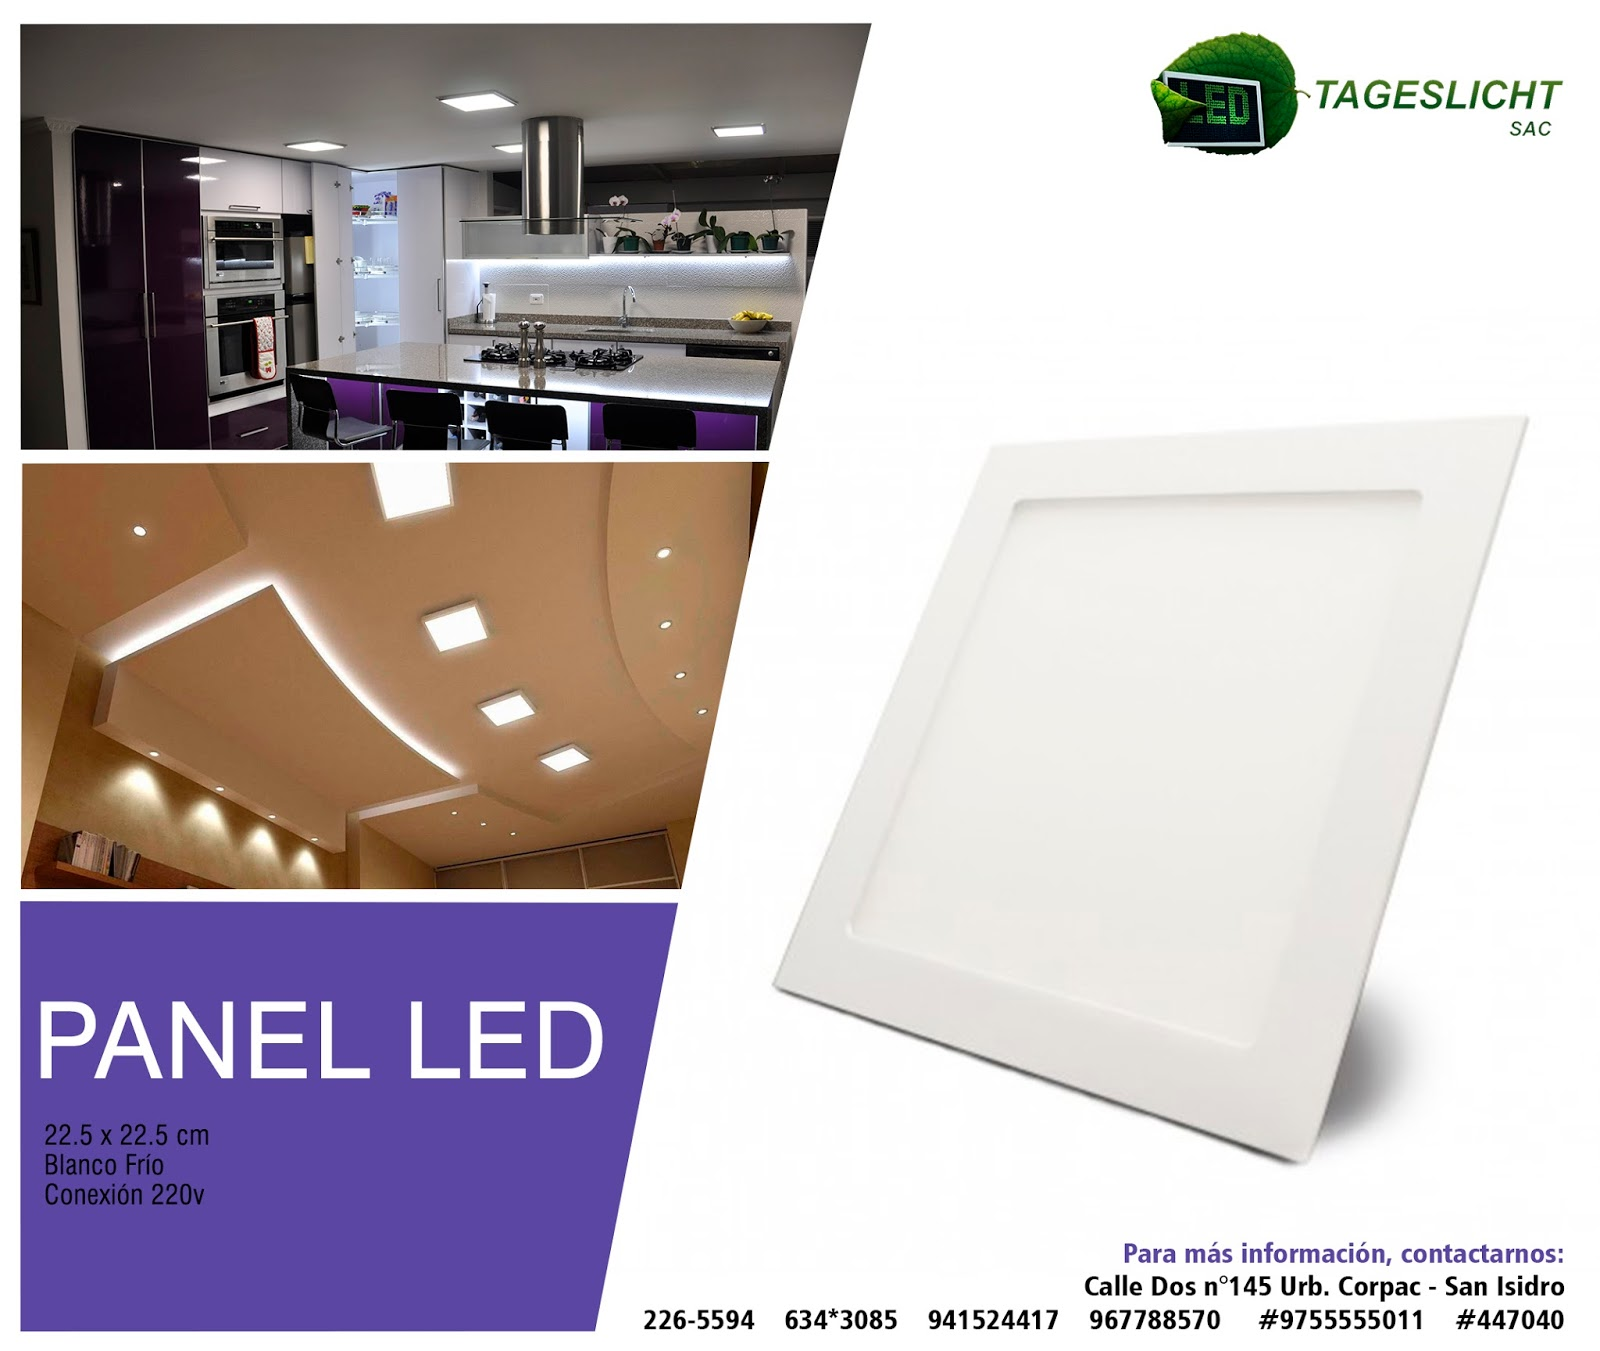 Led Panel Tageslicht Tageslicht IluminaciÓn Led Panel Led 22 5 X 22 5 Cm